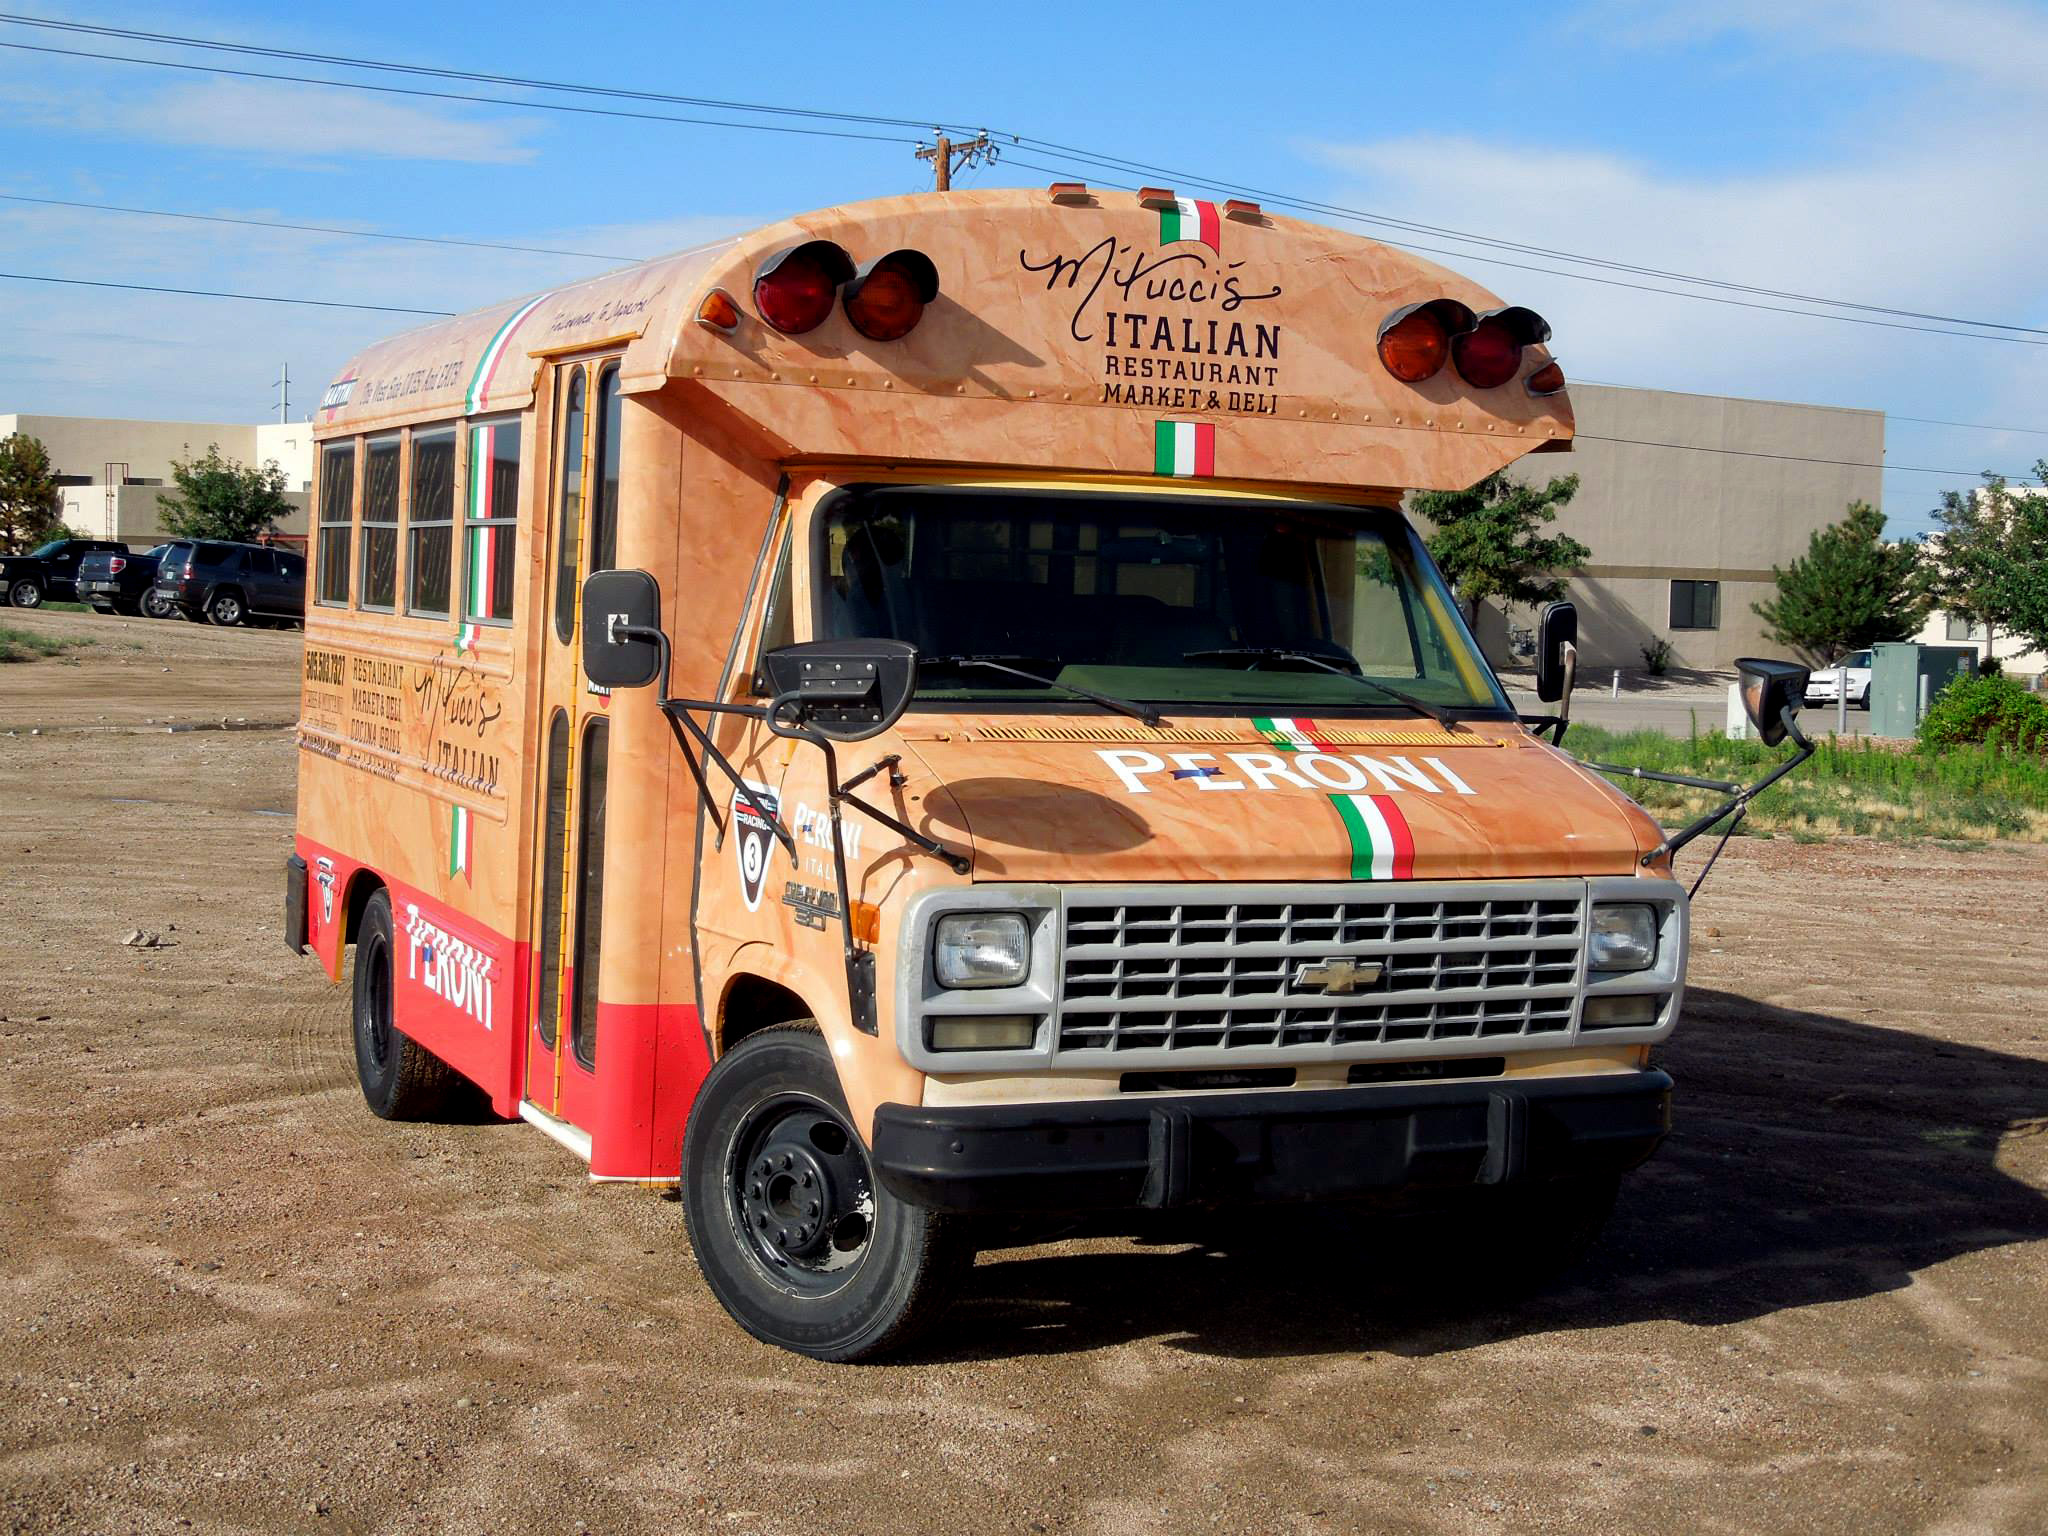 Mtuccis Bus_Front Angled.jpg